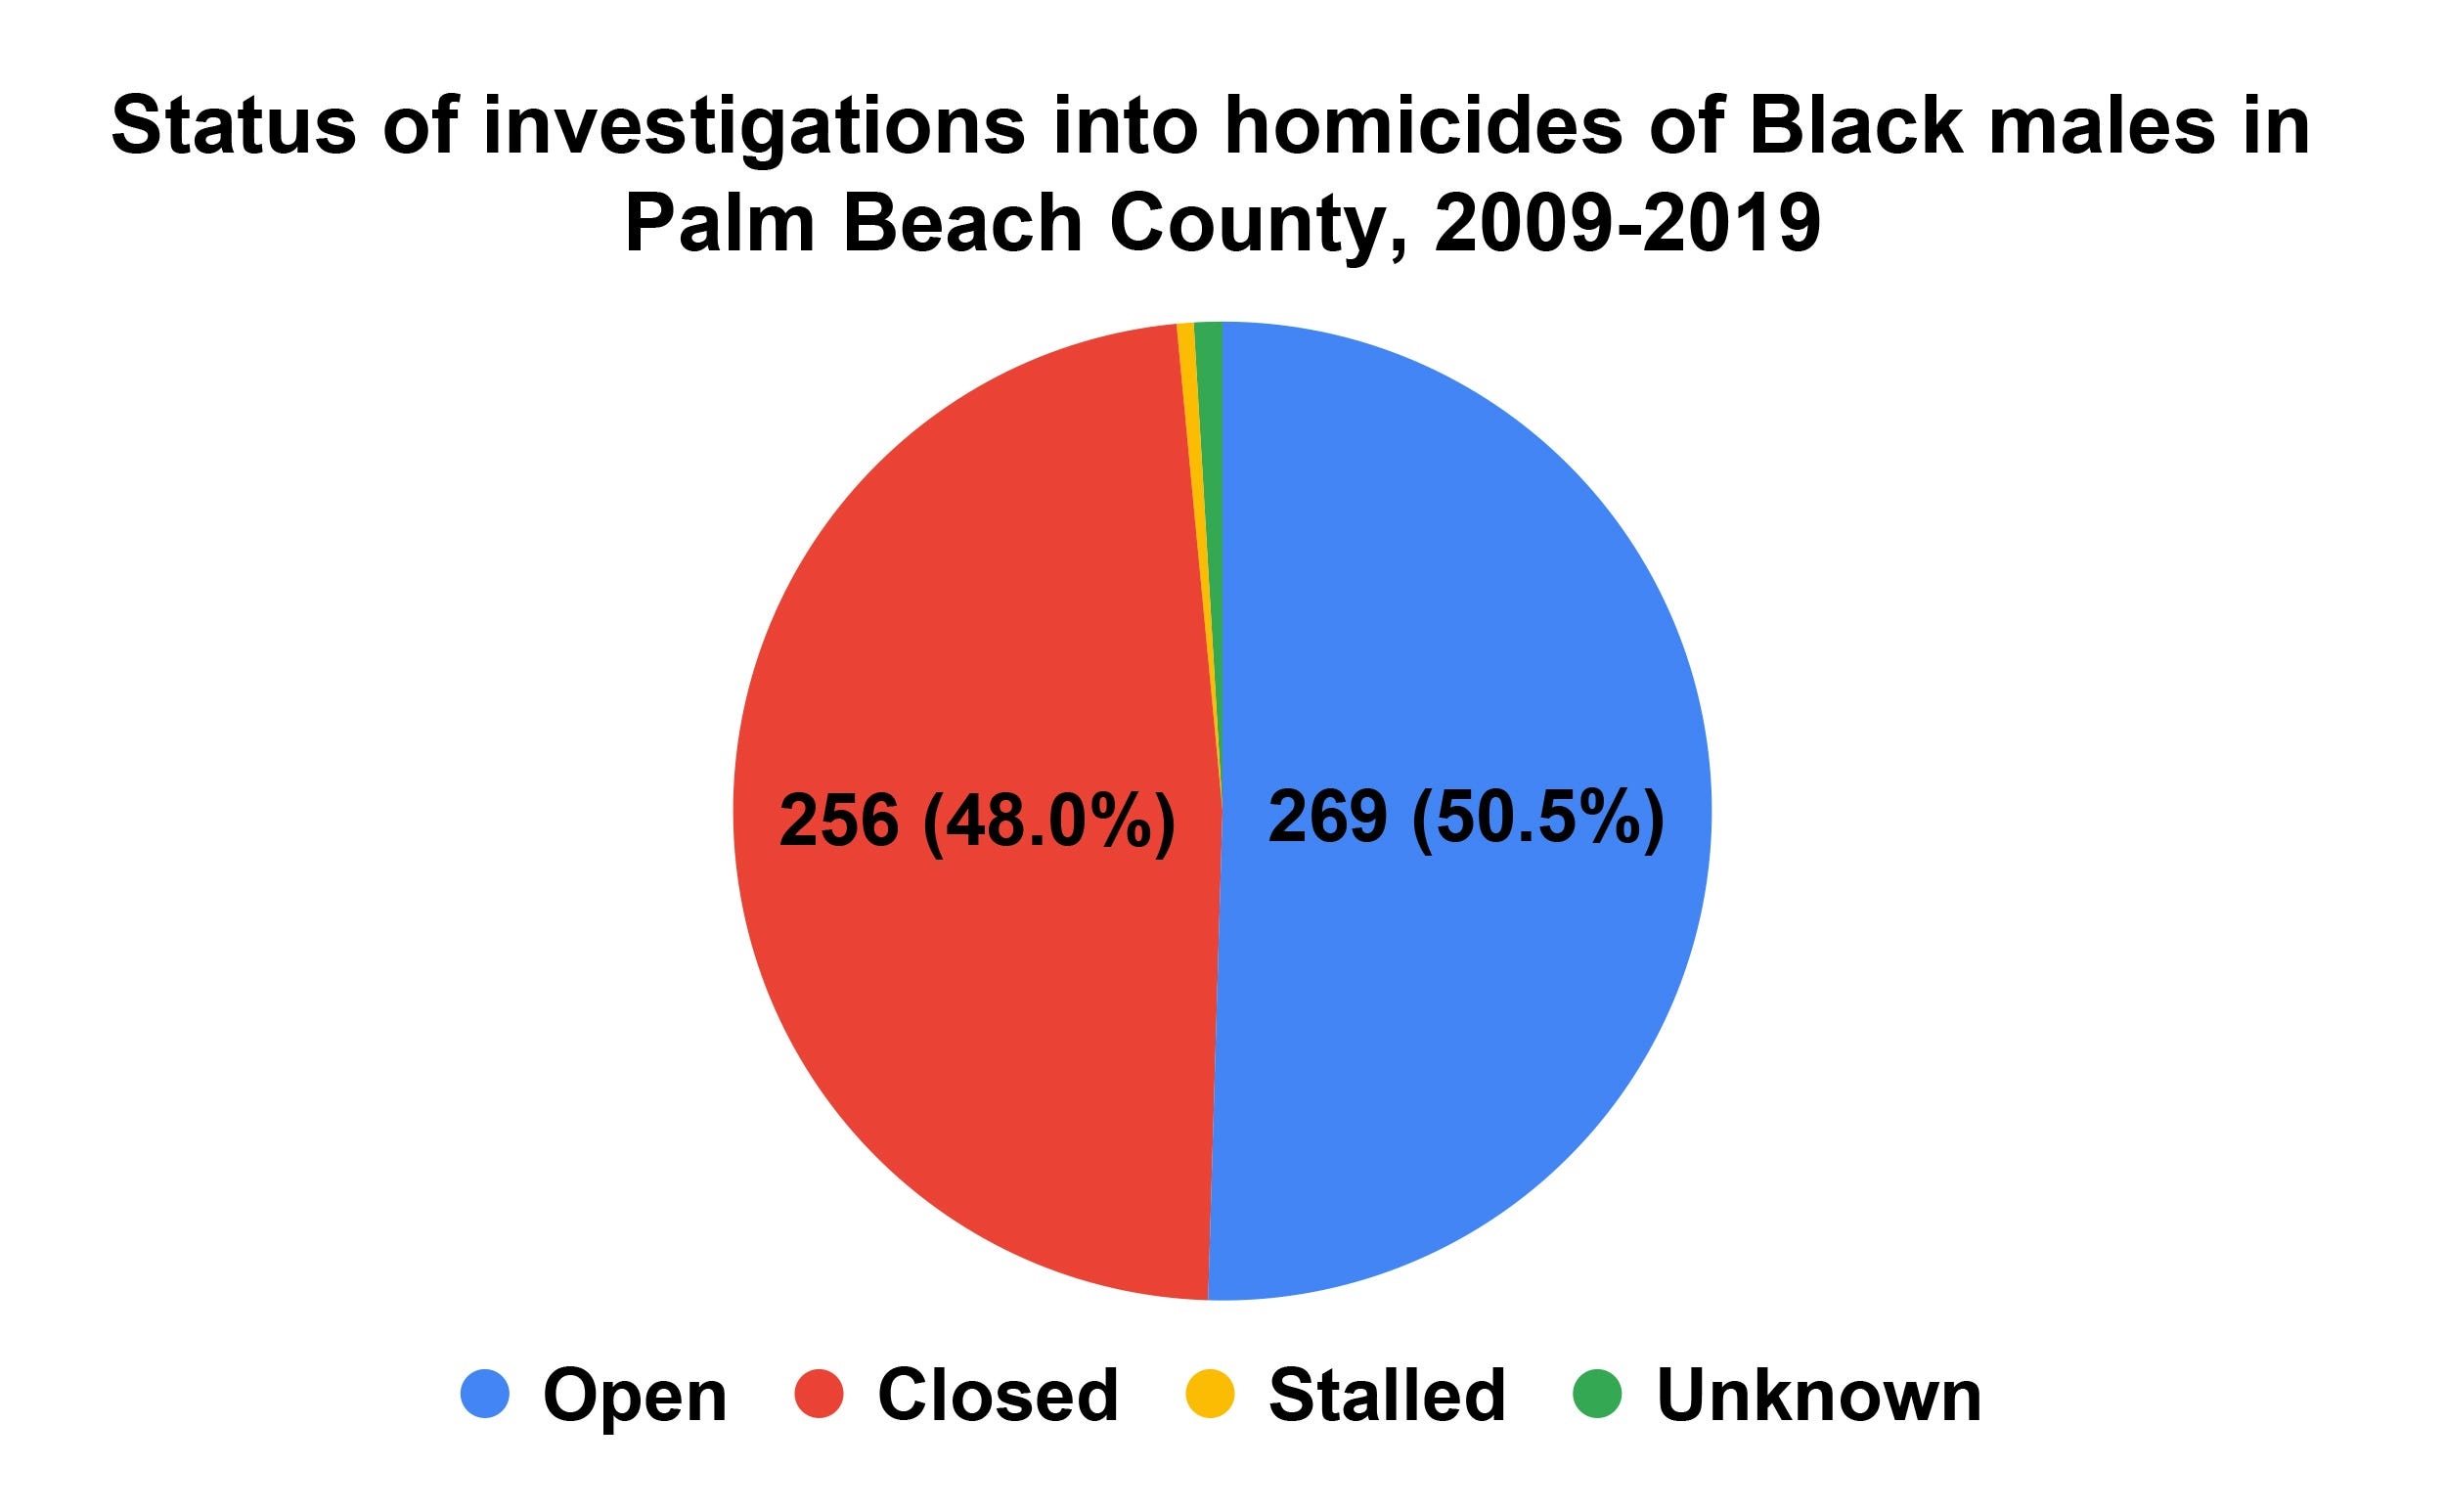 Status of investigations into homicides of Black males in Palm Beach County from 2009 to 2019.